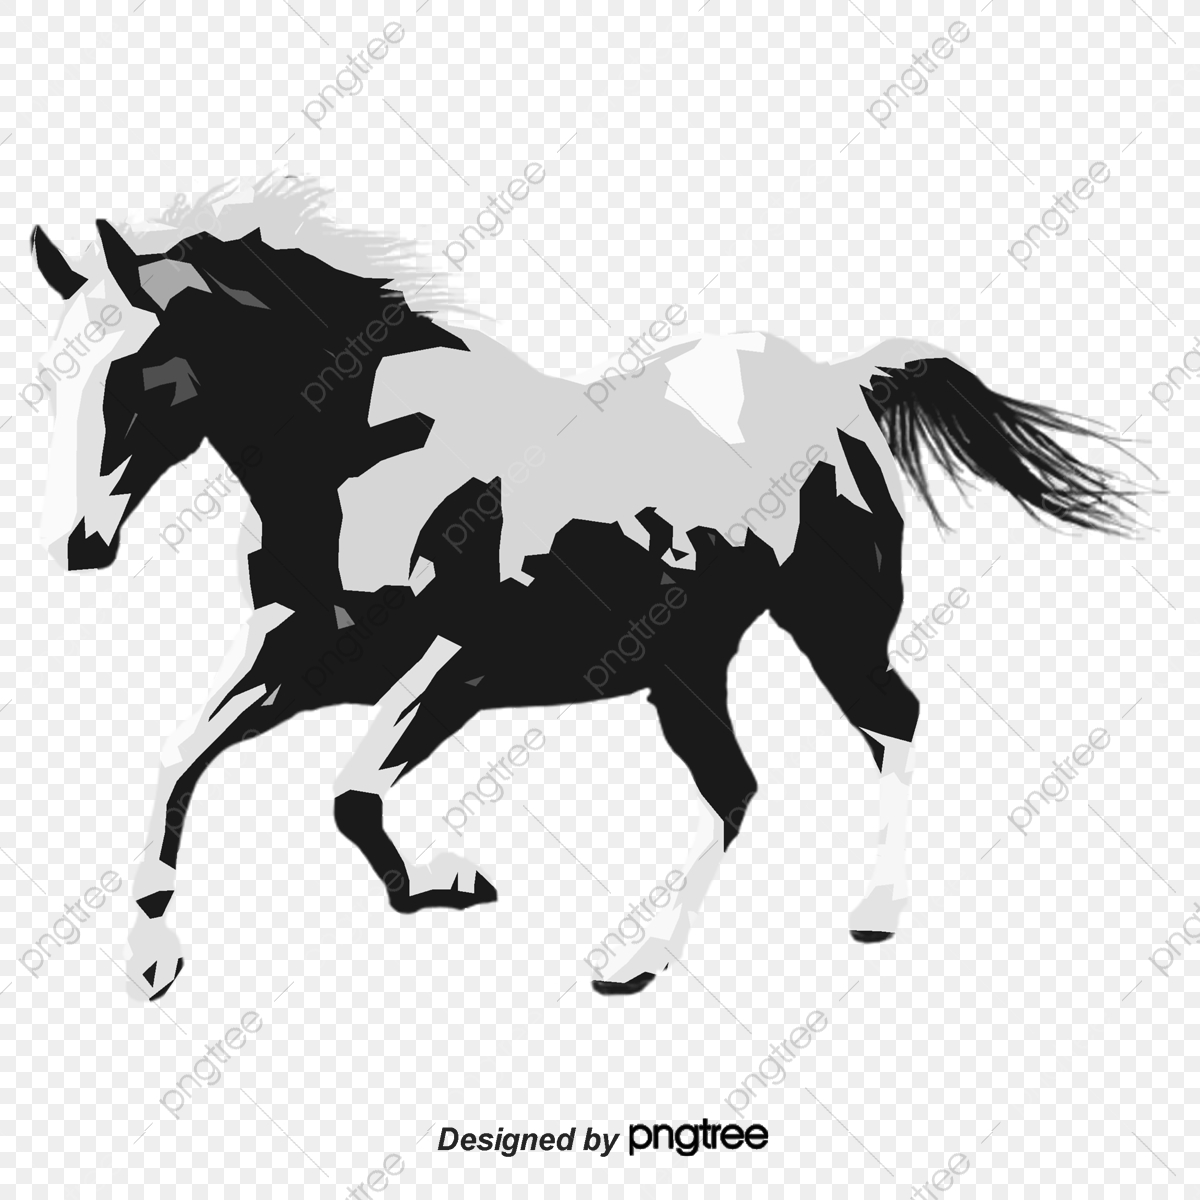 Vector Running Horses Horse Vector Dart Png Transparent Clipart Image And Psd File For Free Download